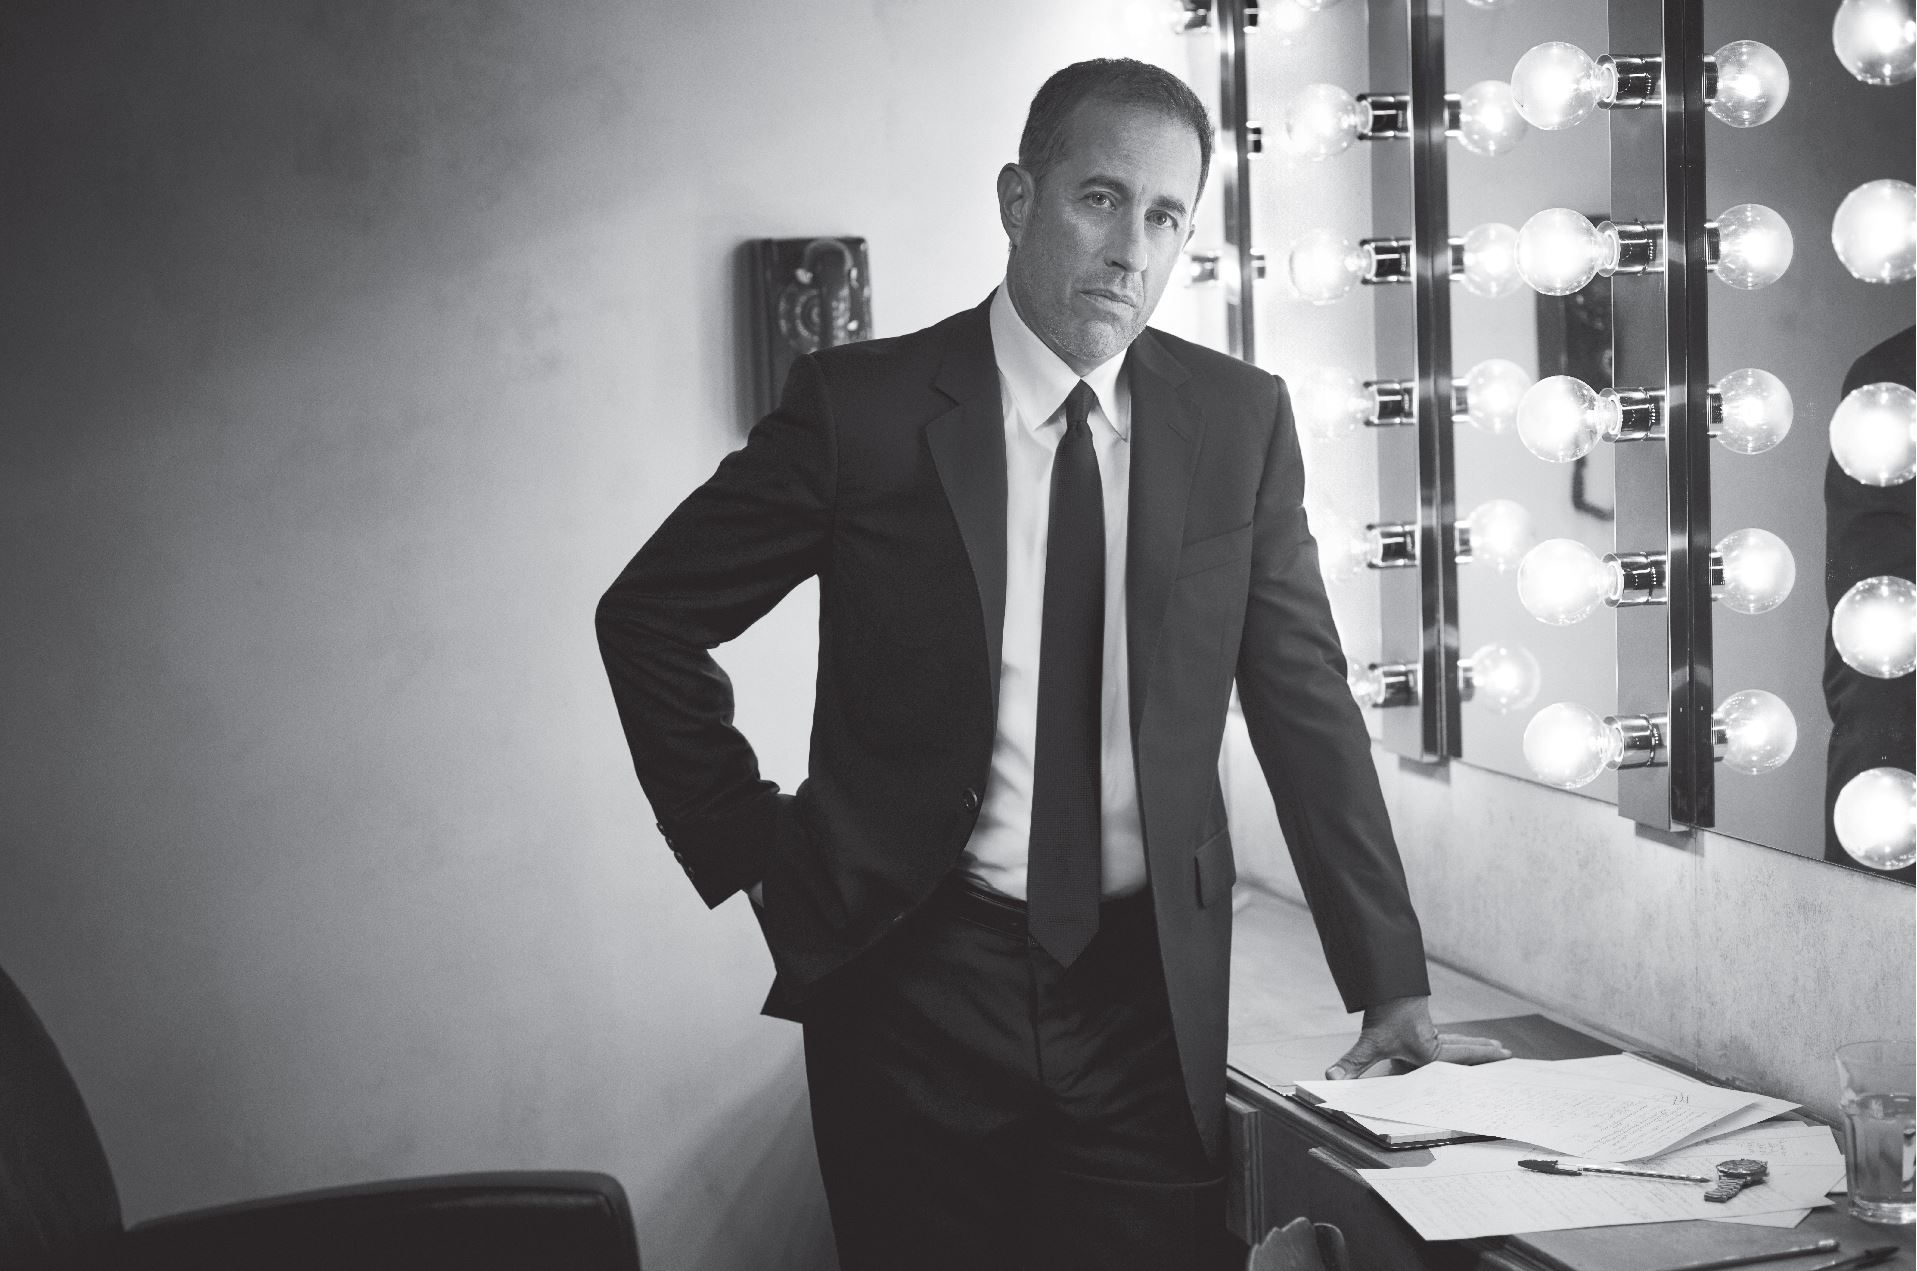 Jerry Seinfeld Black and White Promotional Photo